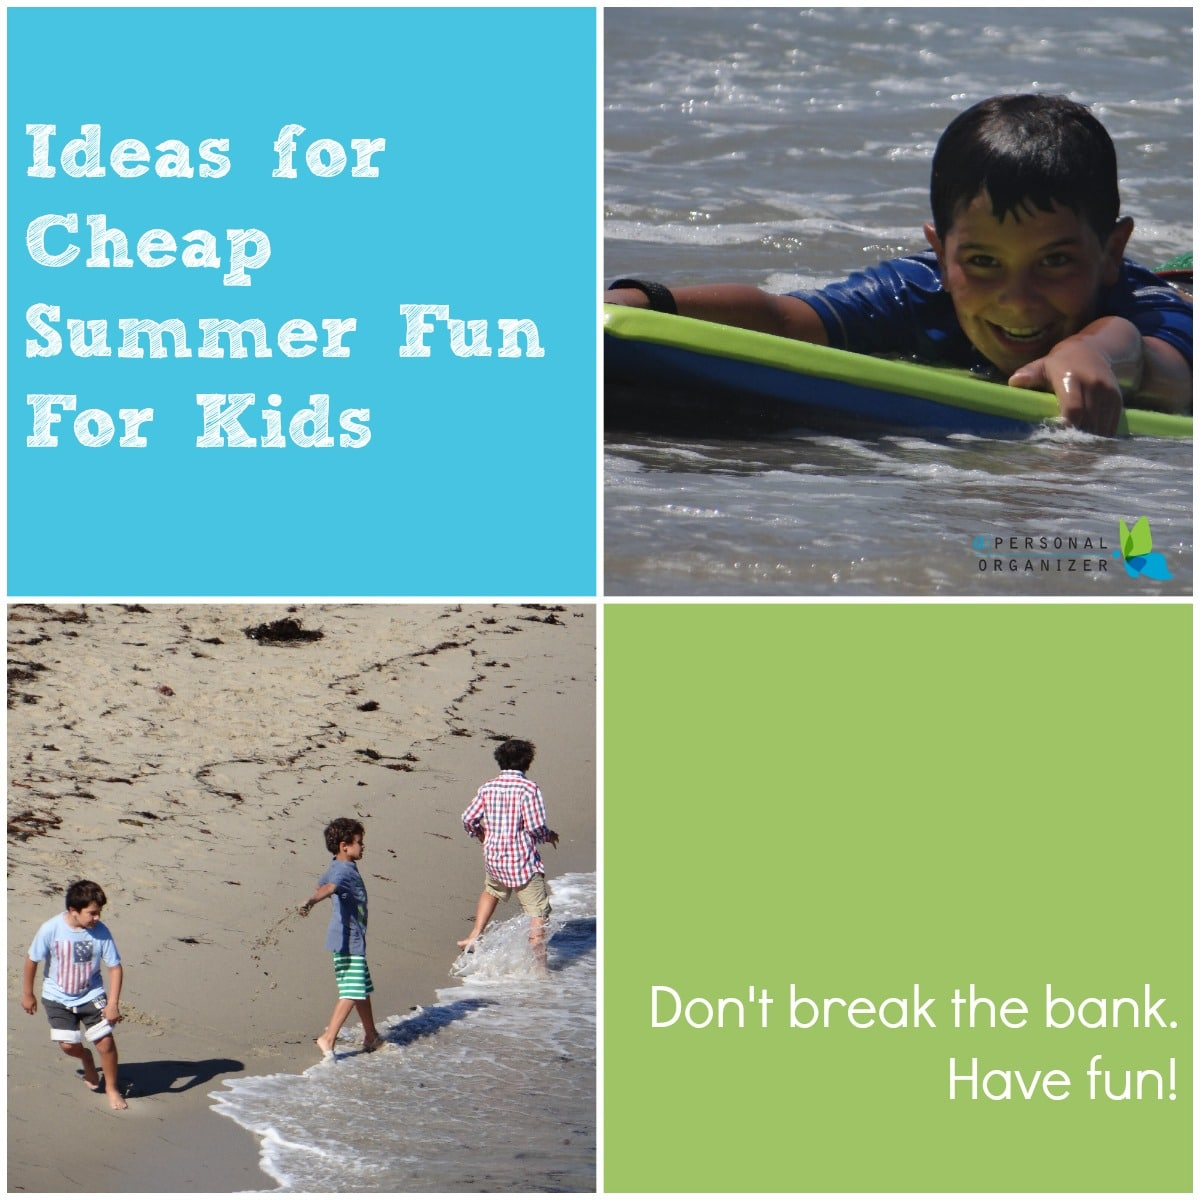 Free organizing printable for inexpensive summer fun for kids.